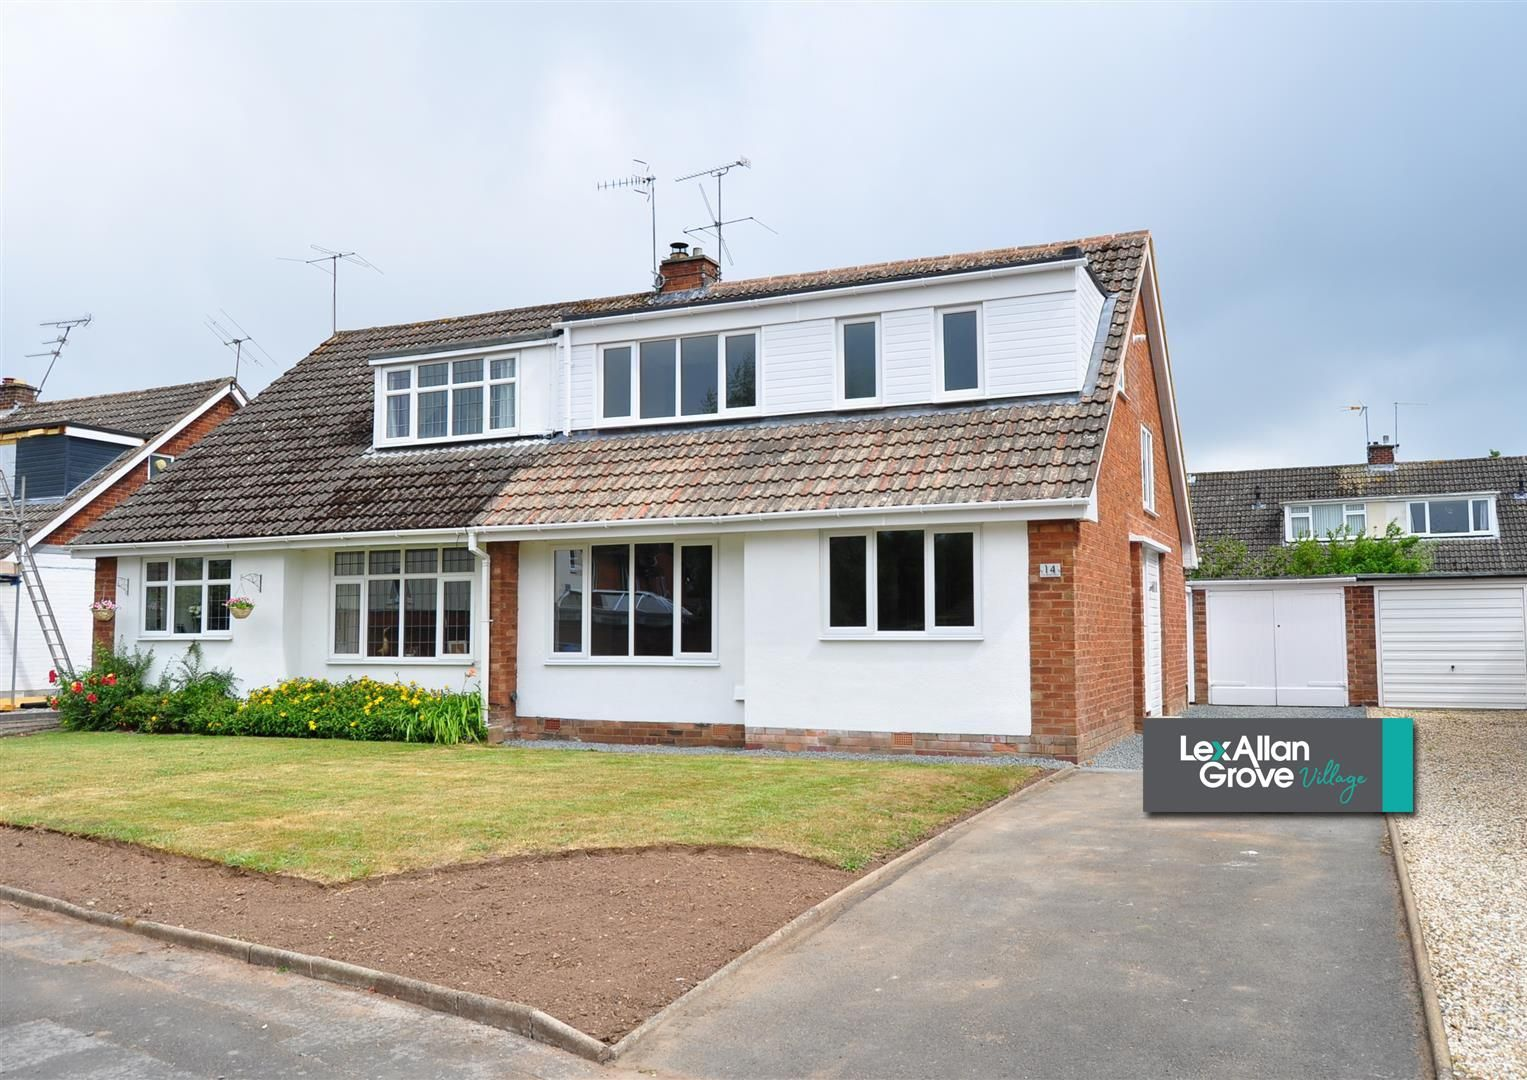 3 bed semi-detached-bungalow for sale in Hagley, DY9